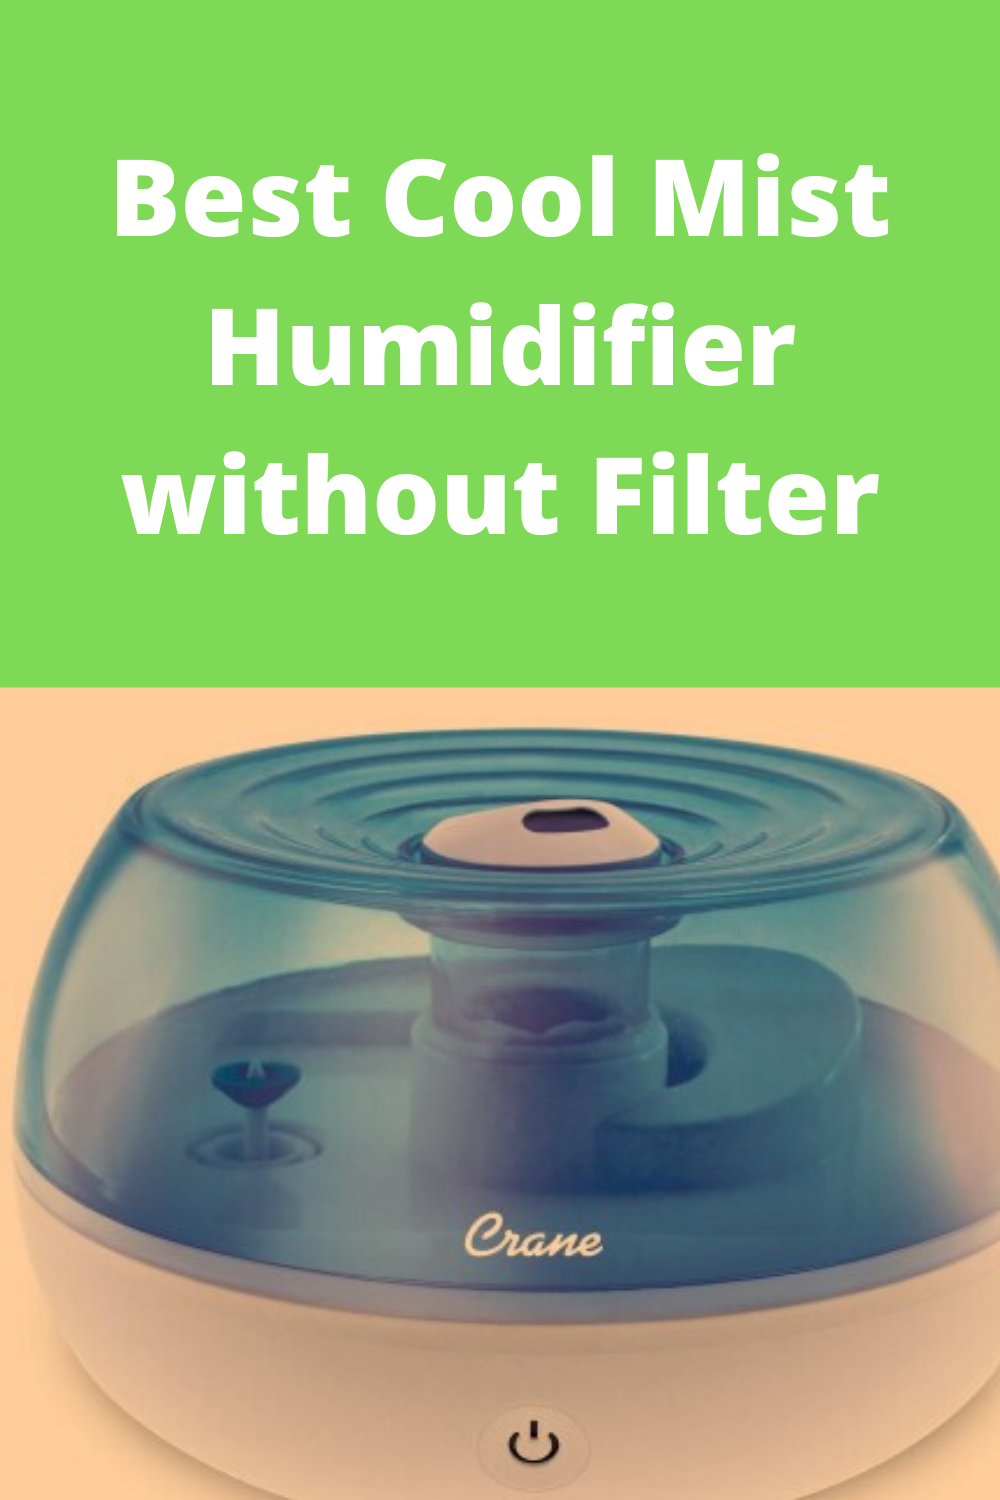 Best Cool Mist Humidifier without Filter in 2020 (With